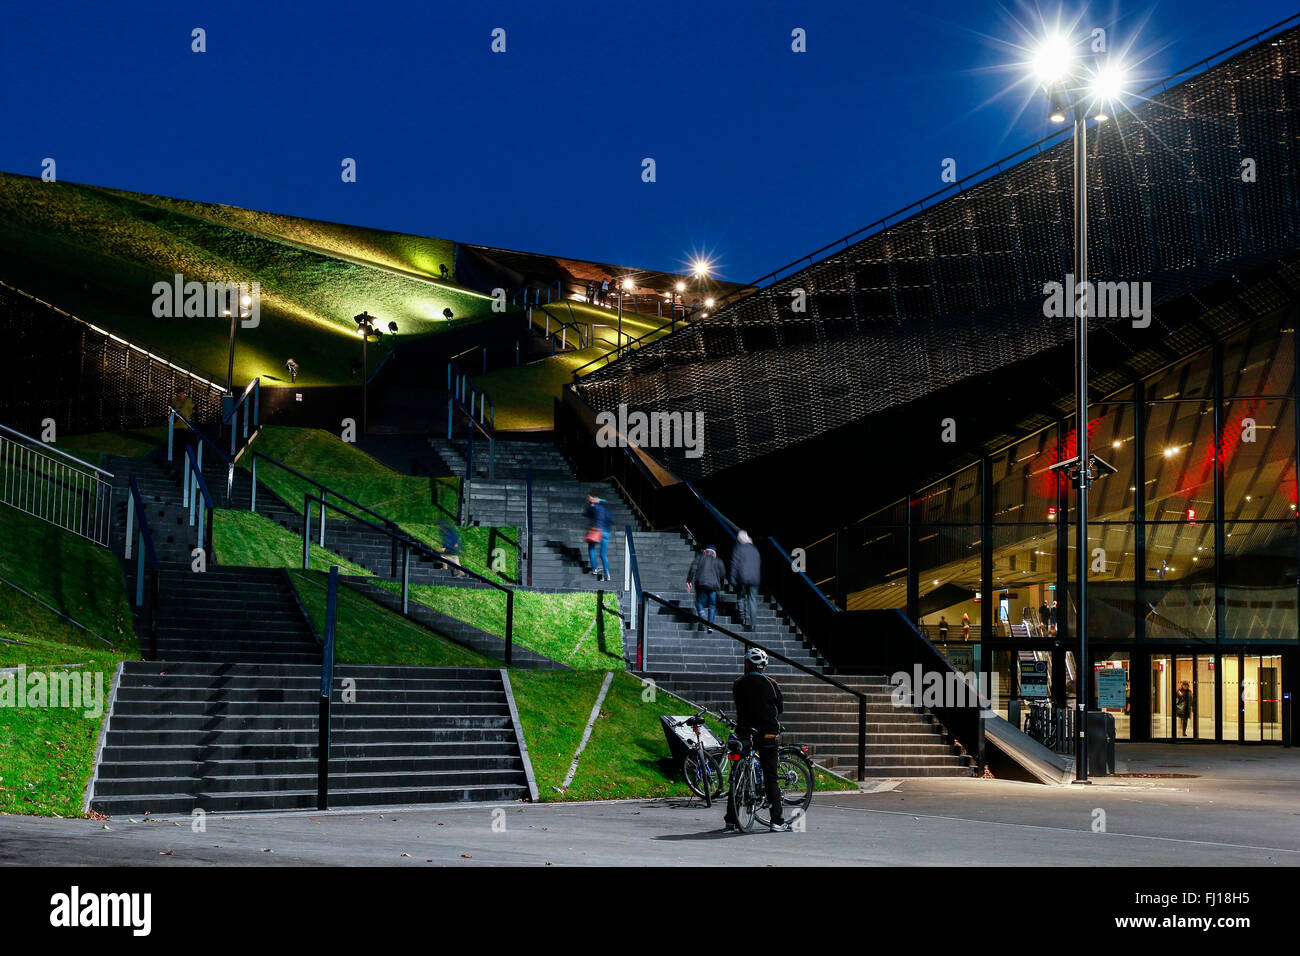 Spodek - a multipurpose arena complex in Katowice, Poland. Tourists destination Stock Photo